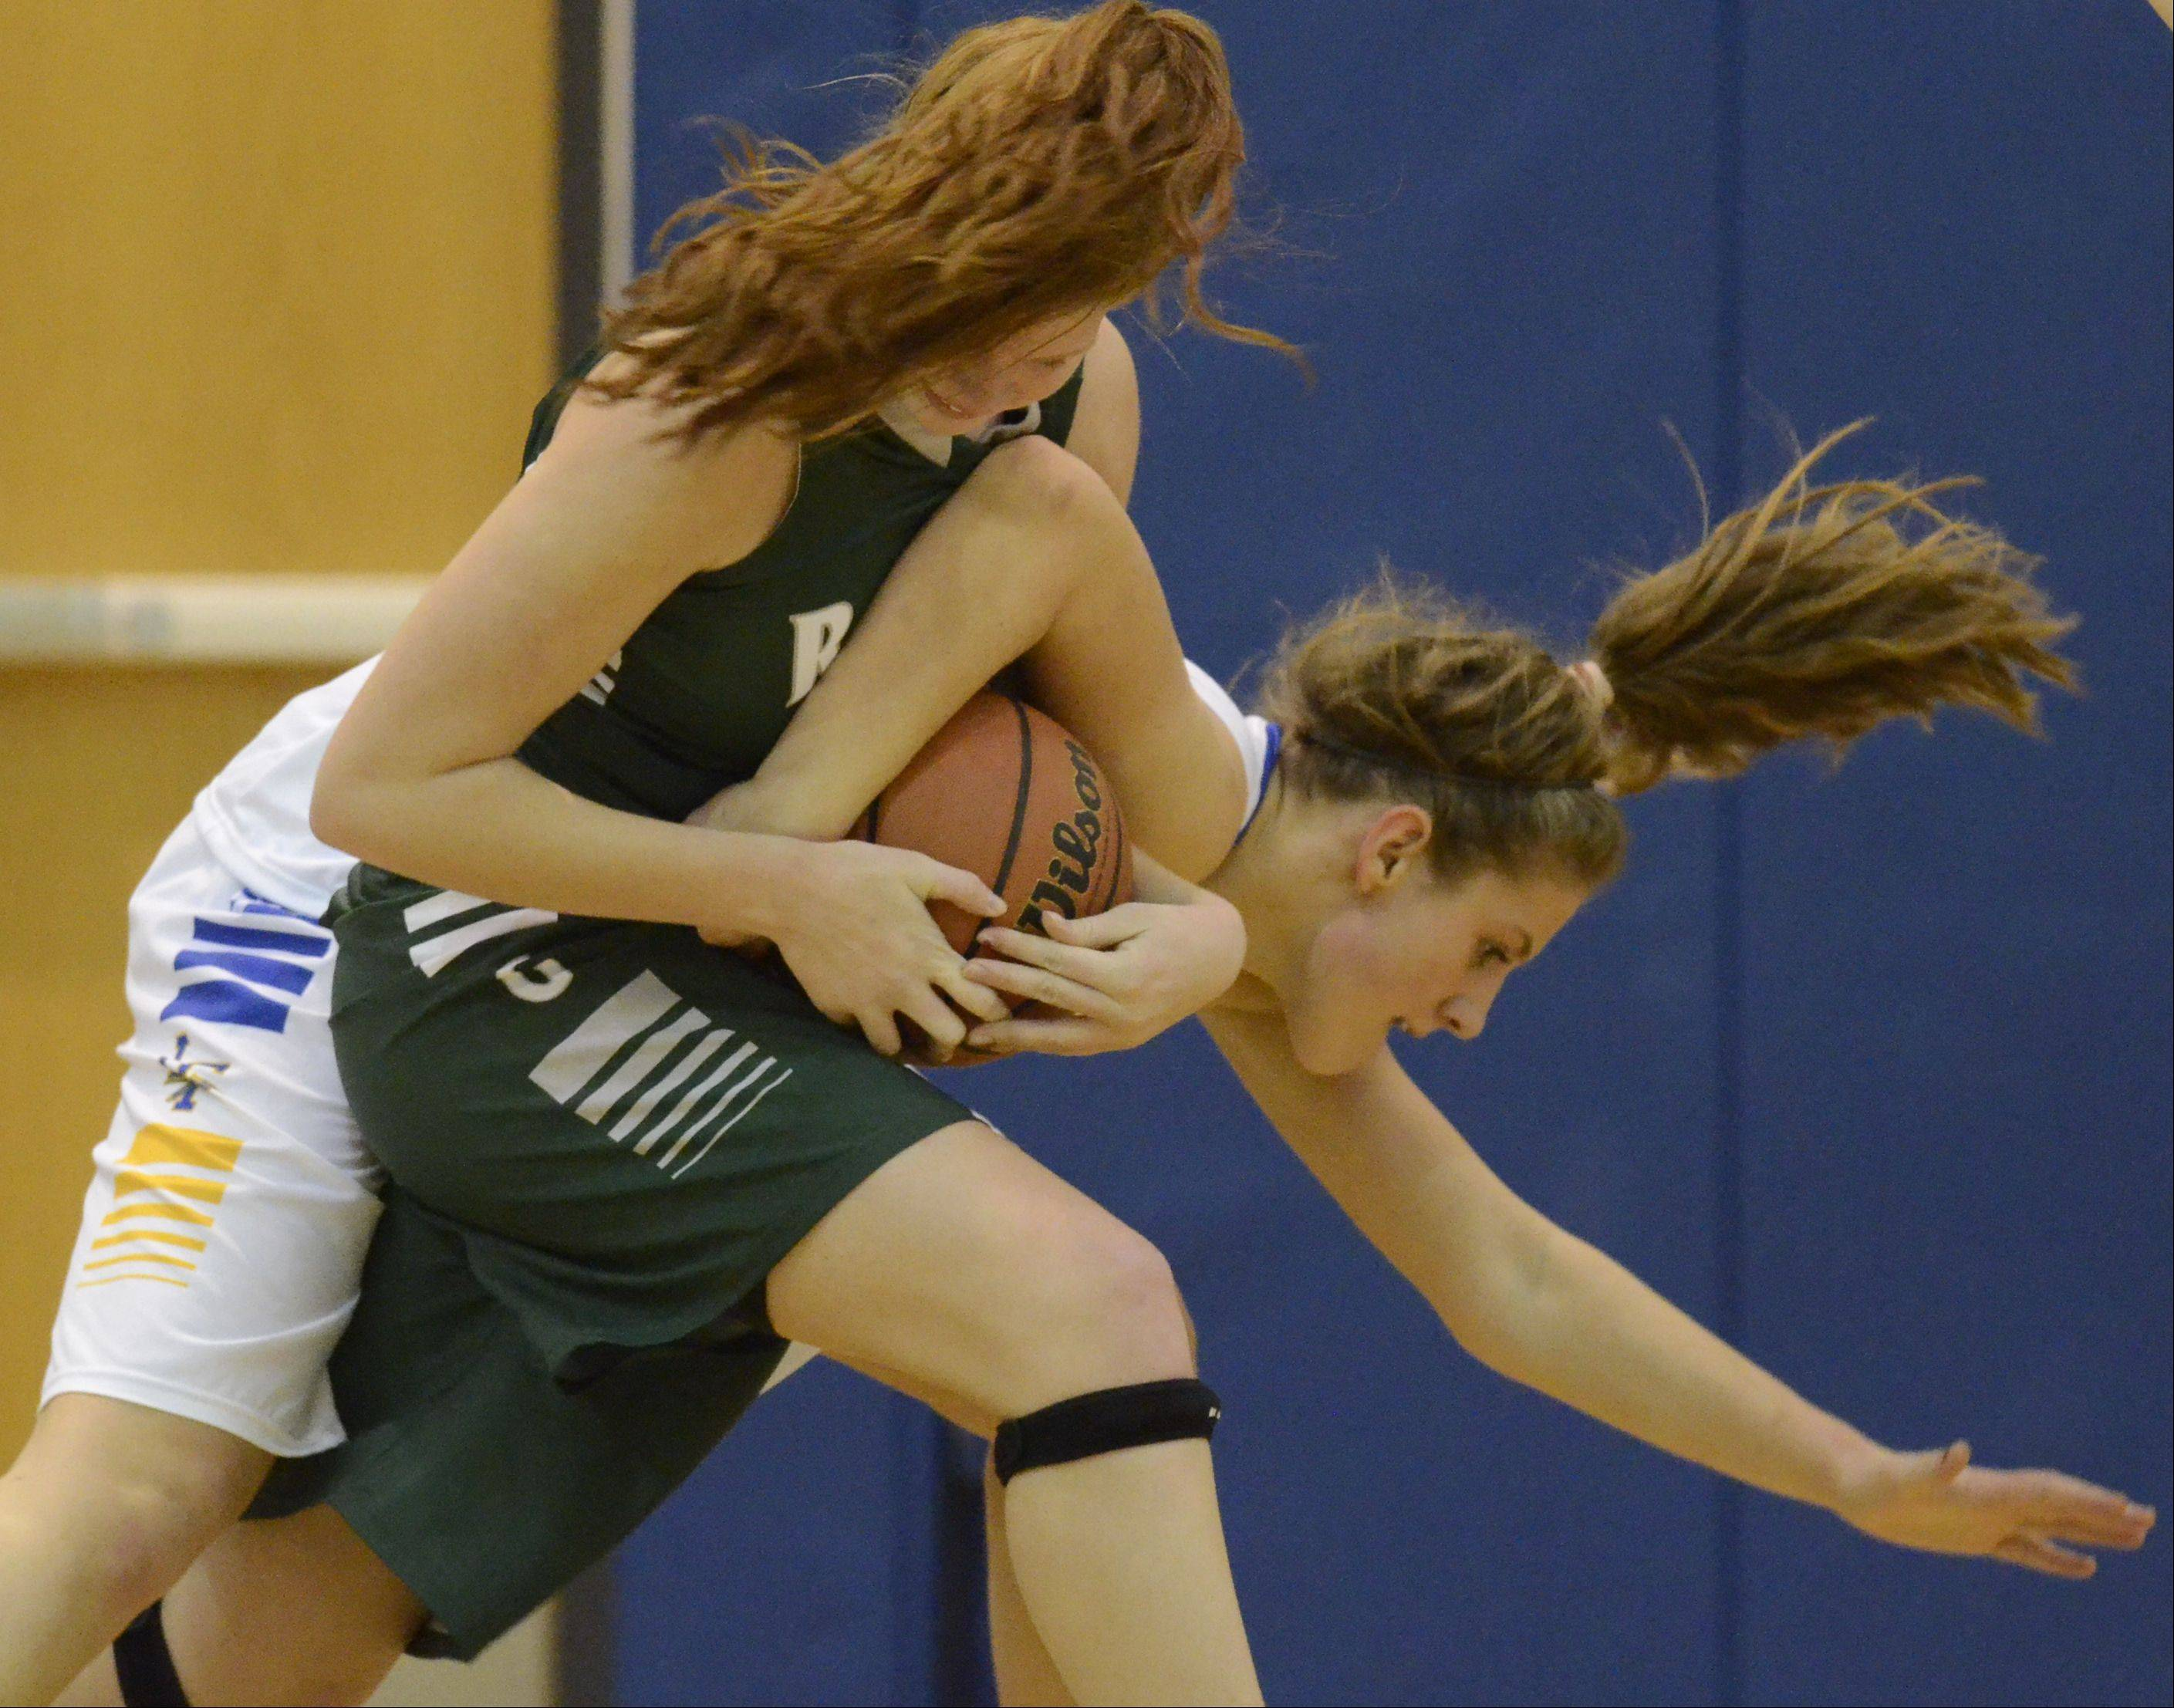 Images from the Lake Forest vs. Grayslake Central girls basketball game on Saturday, Dec. 22 in Gurnee.